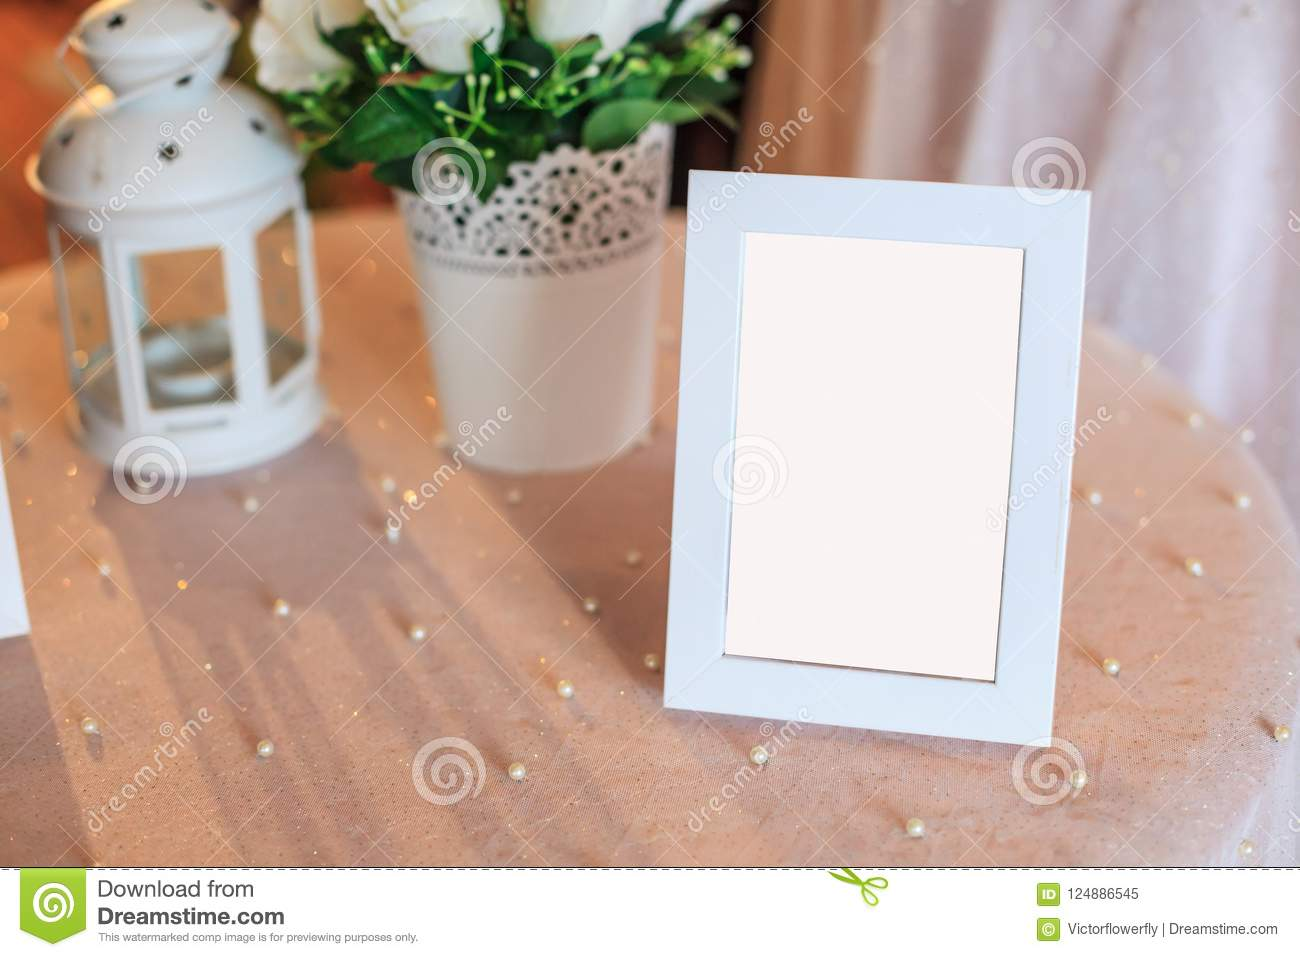 Blank wooden picture frame decoration on table decorated by white tablecloth. Wedding reception ceremony, anniversary celebration